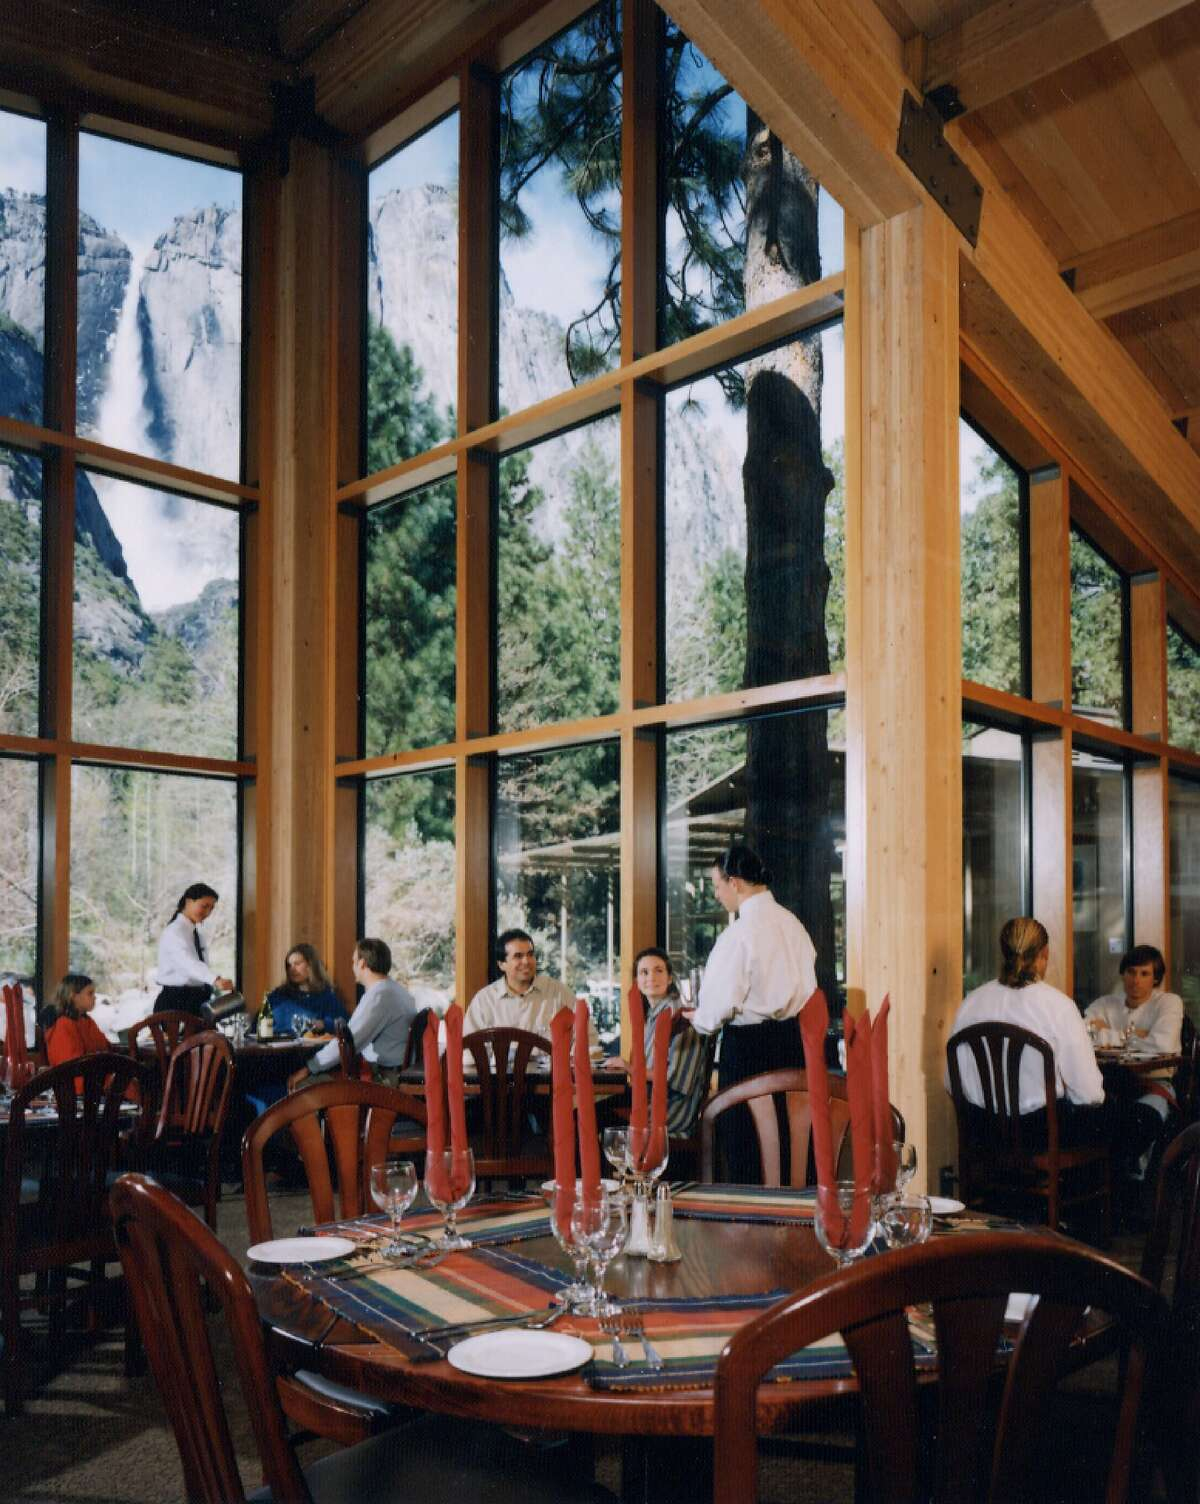 The expansion of the dining room at Yosemite Lodge was among the projects led by George Homsey during his 40+ years at the architecture firm EHDD.